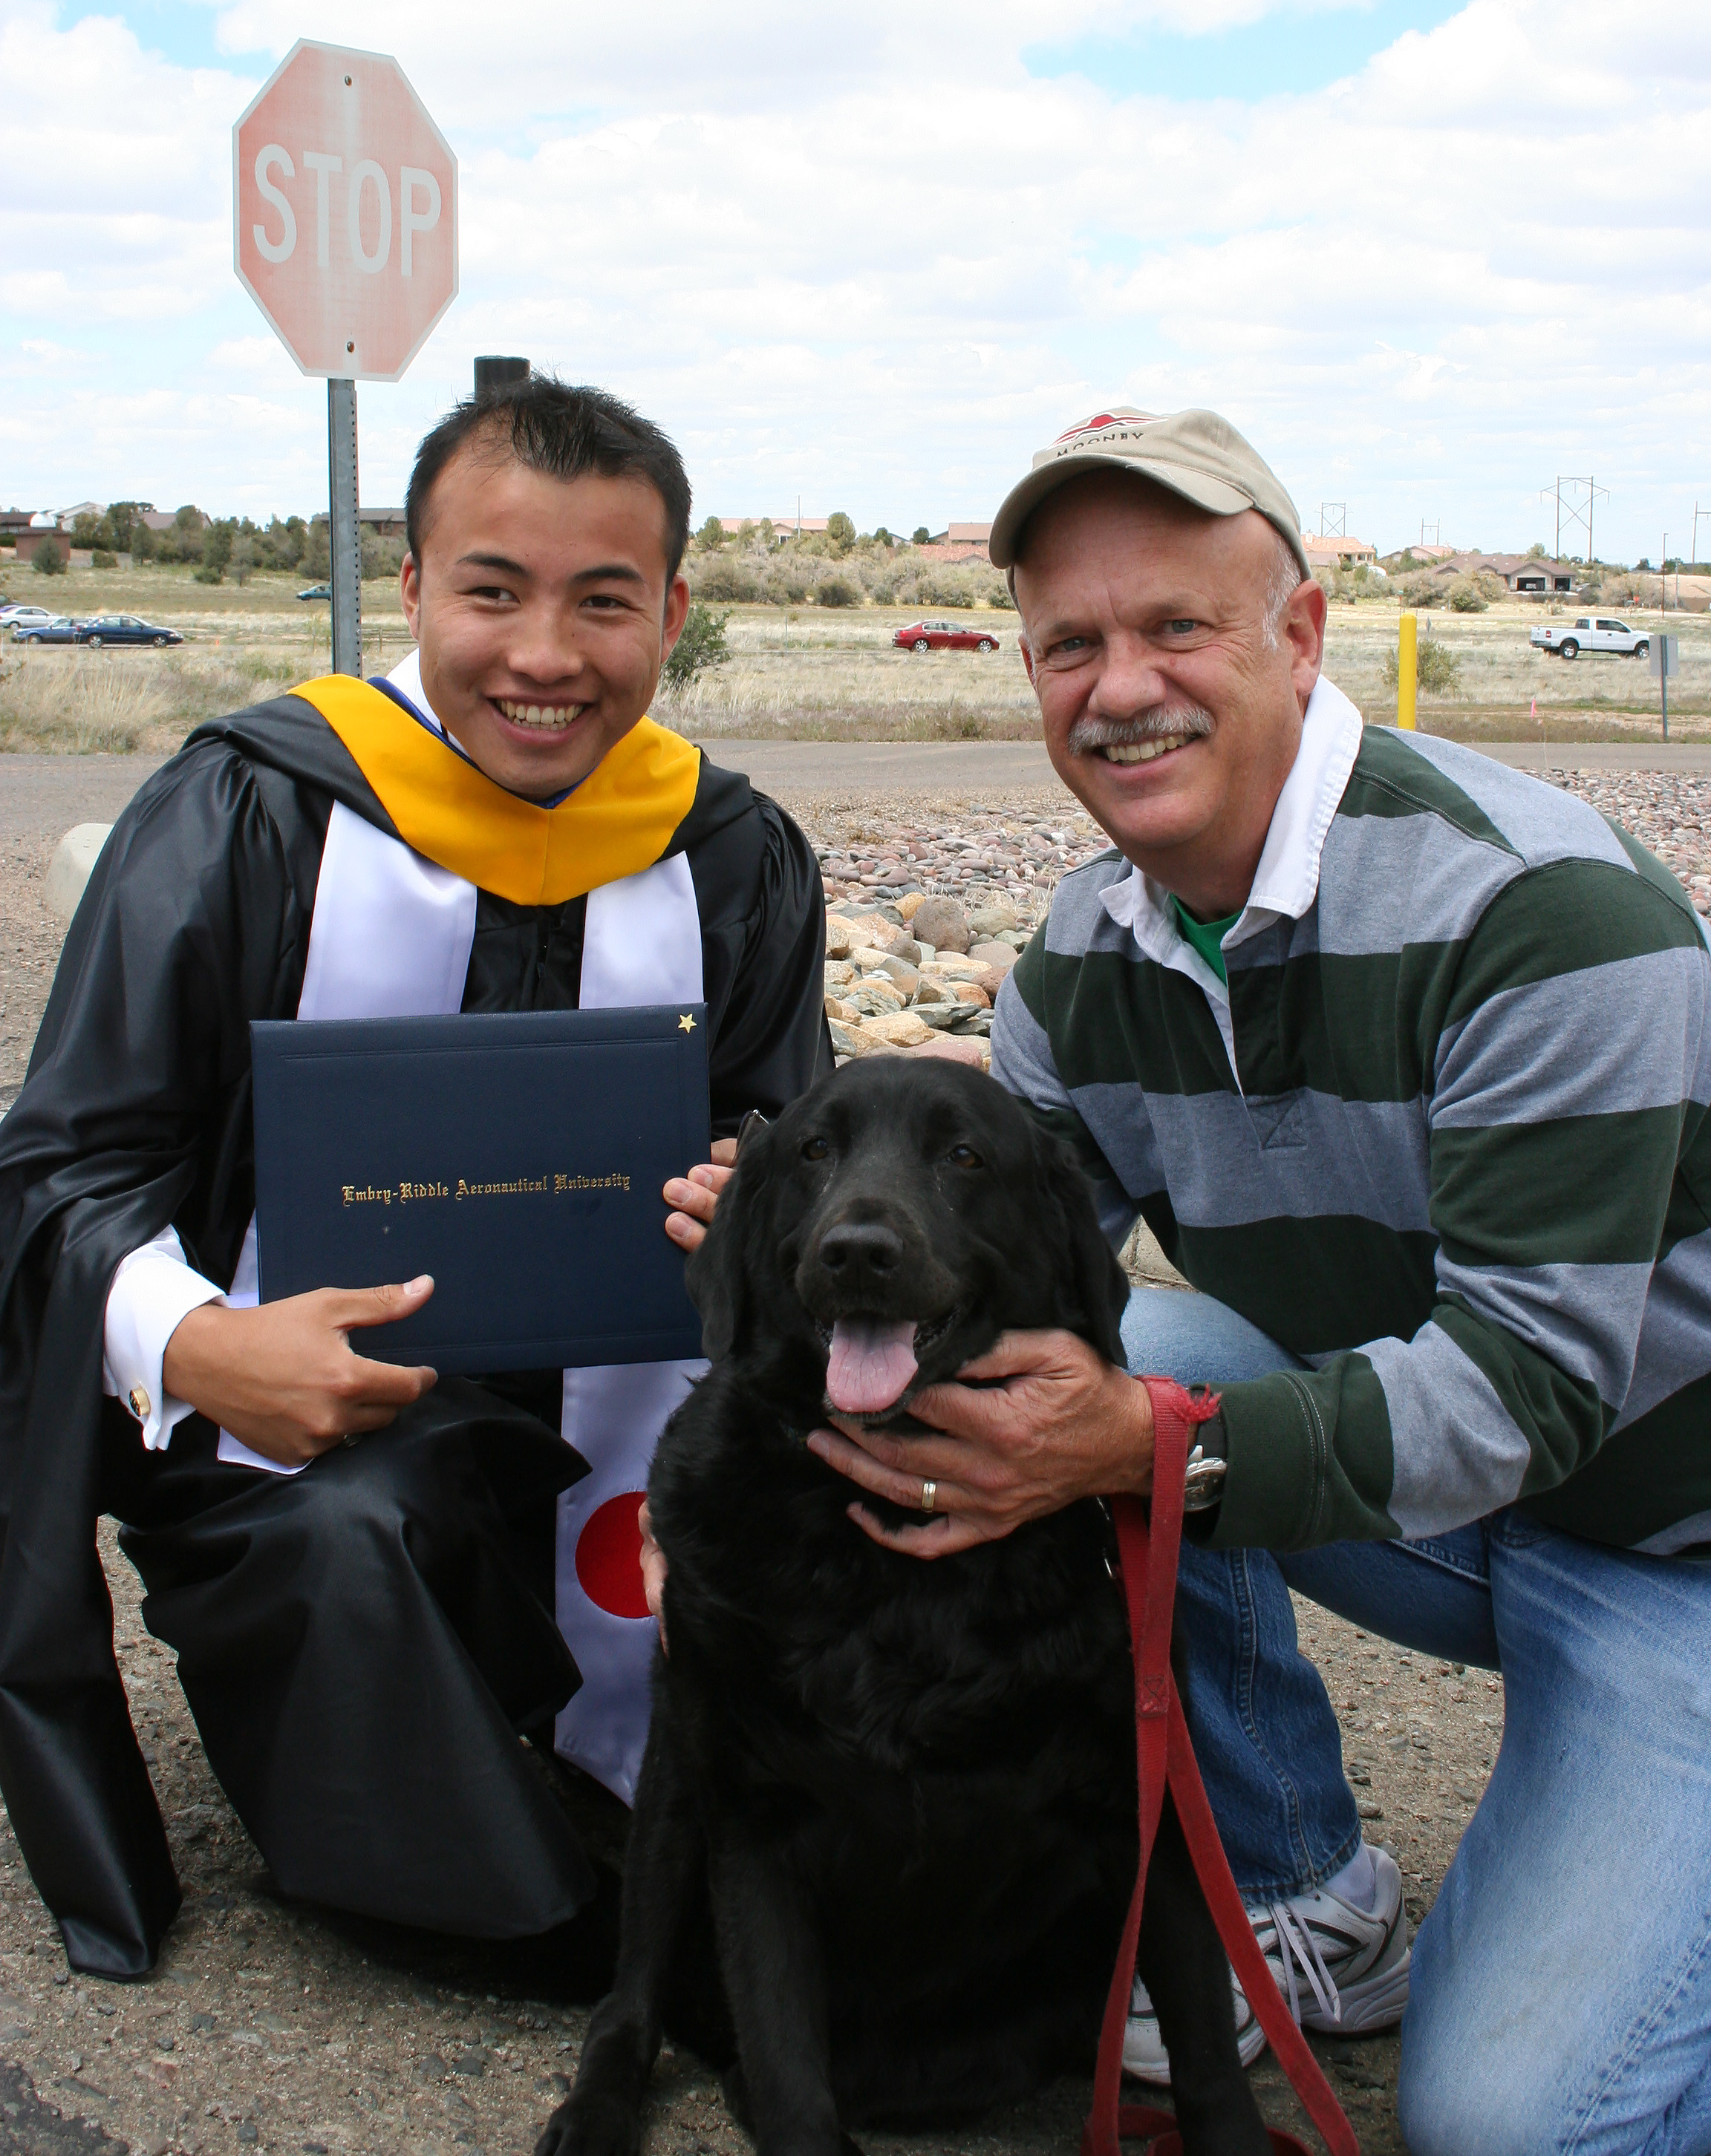 Embry Riddle Aeronautical University teacher Ed Wischmeyer encouraged half-blind pilot Shinji Maeda to pursue his dream. Photo courtesy of Shinji Maeda.